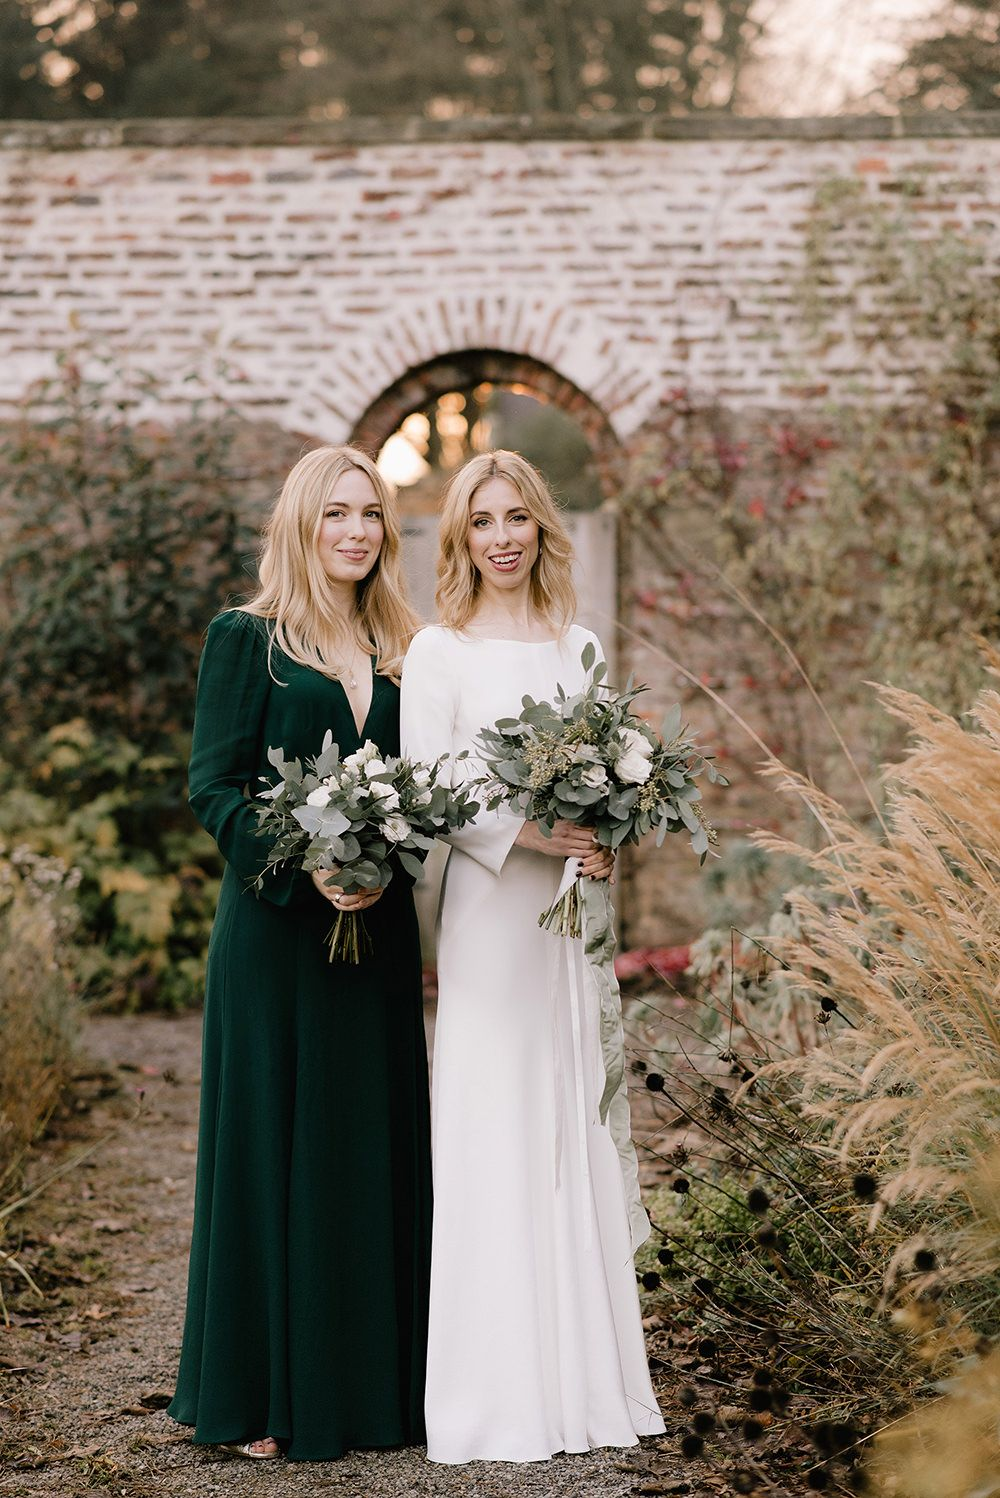 Emerald Green Bridesmaid Dress For A Winter Wedding At Middleton